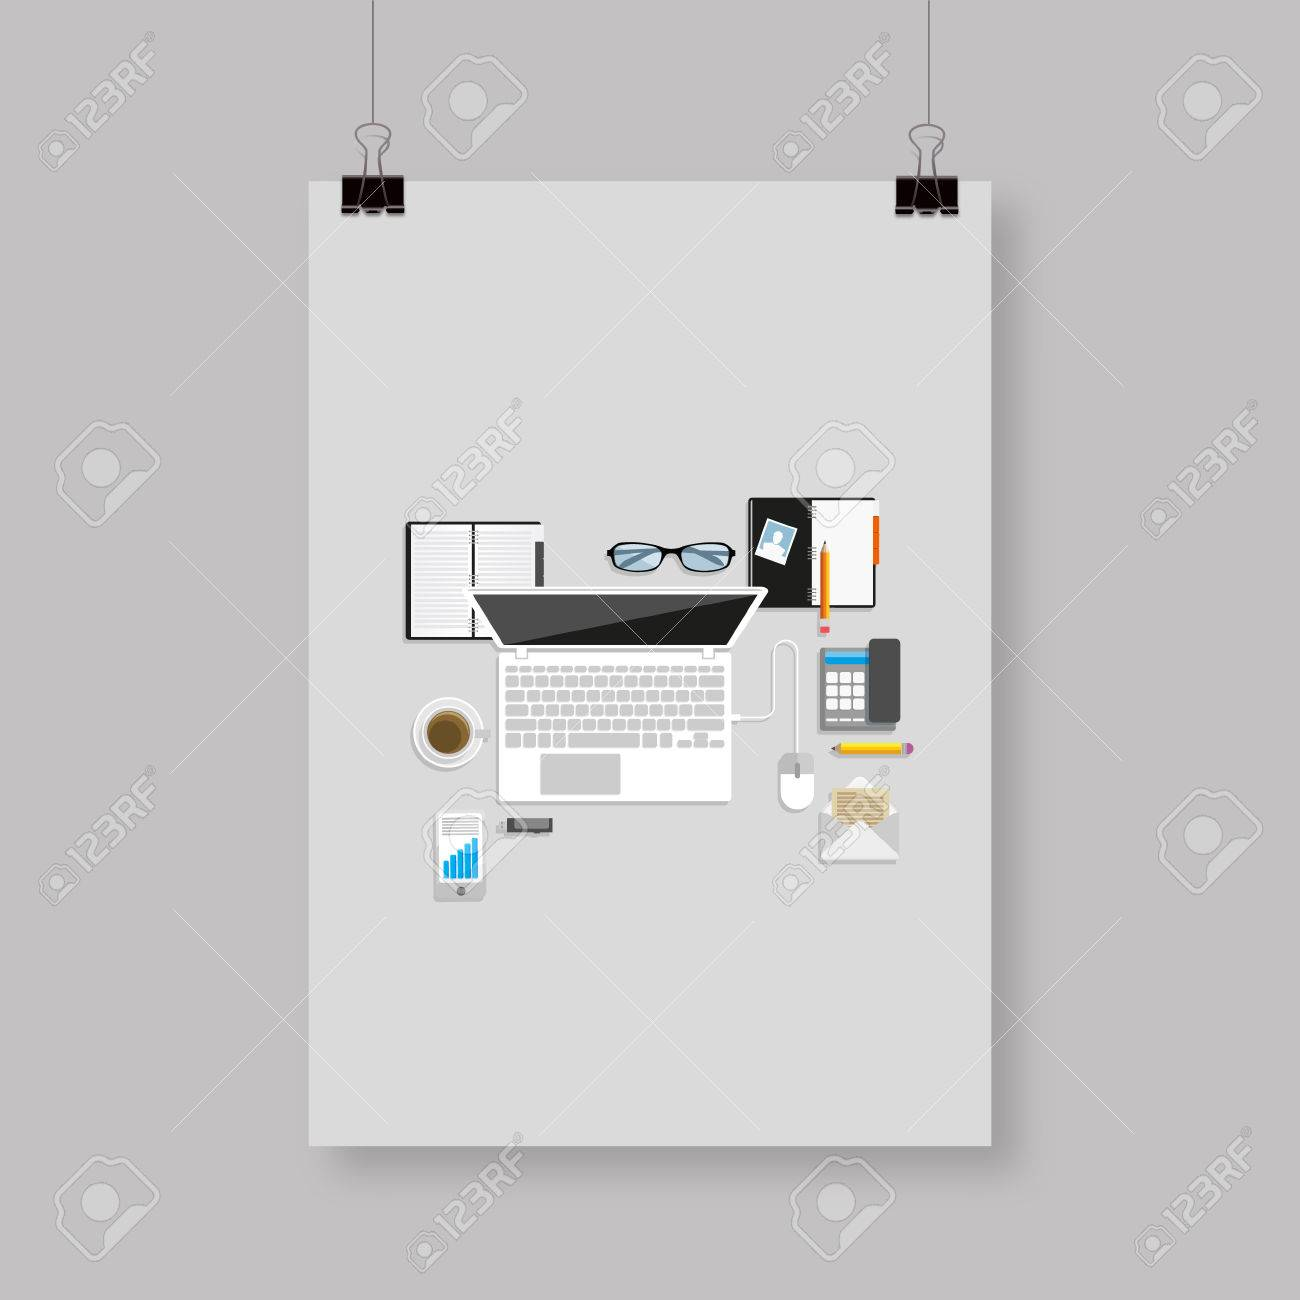 Business plan template flyer editable vector illustration for business plan template flyer editable vector illustration for your design graphic design stock vector 41151164 accmission Gallery